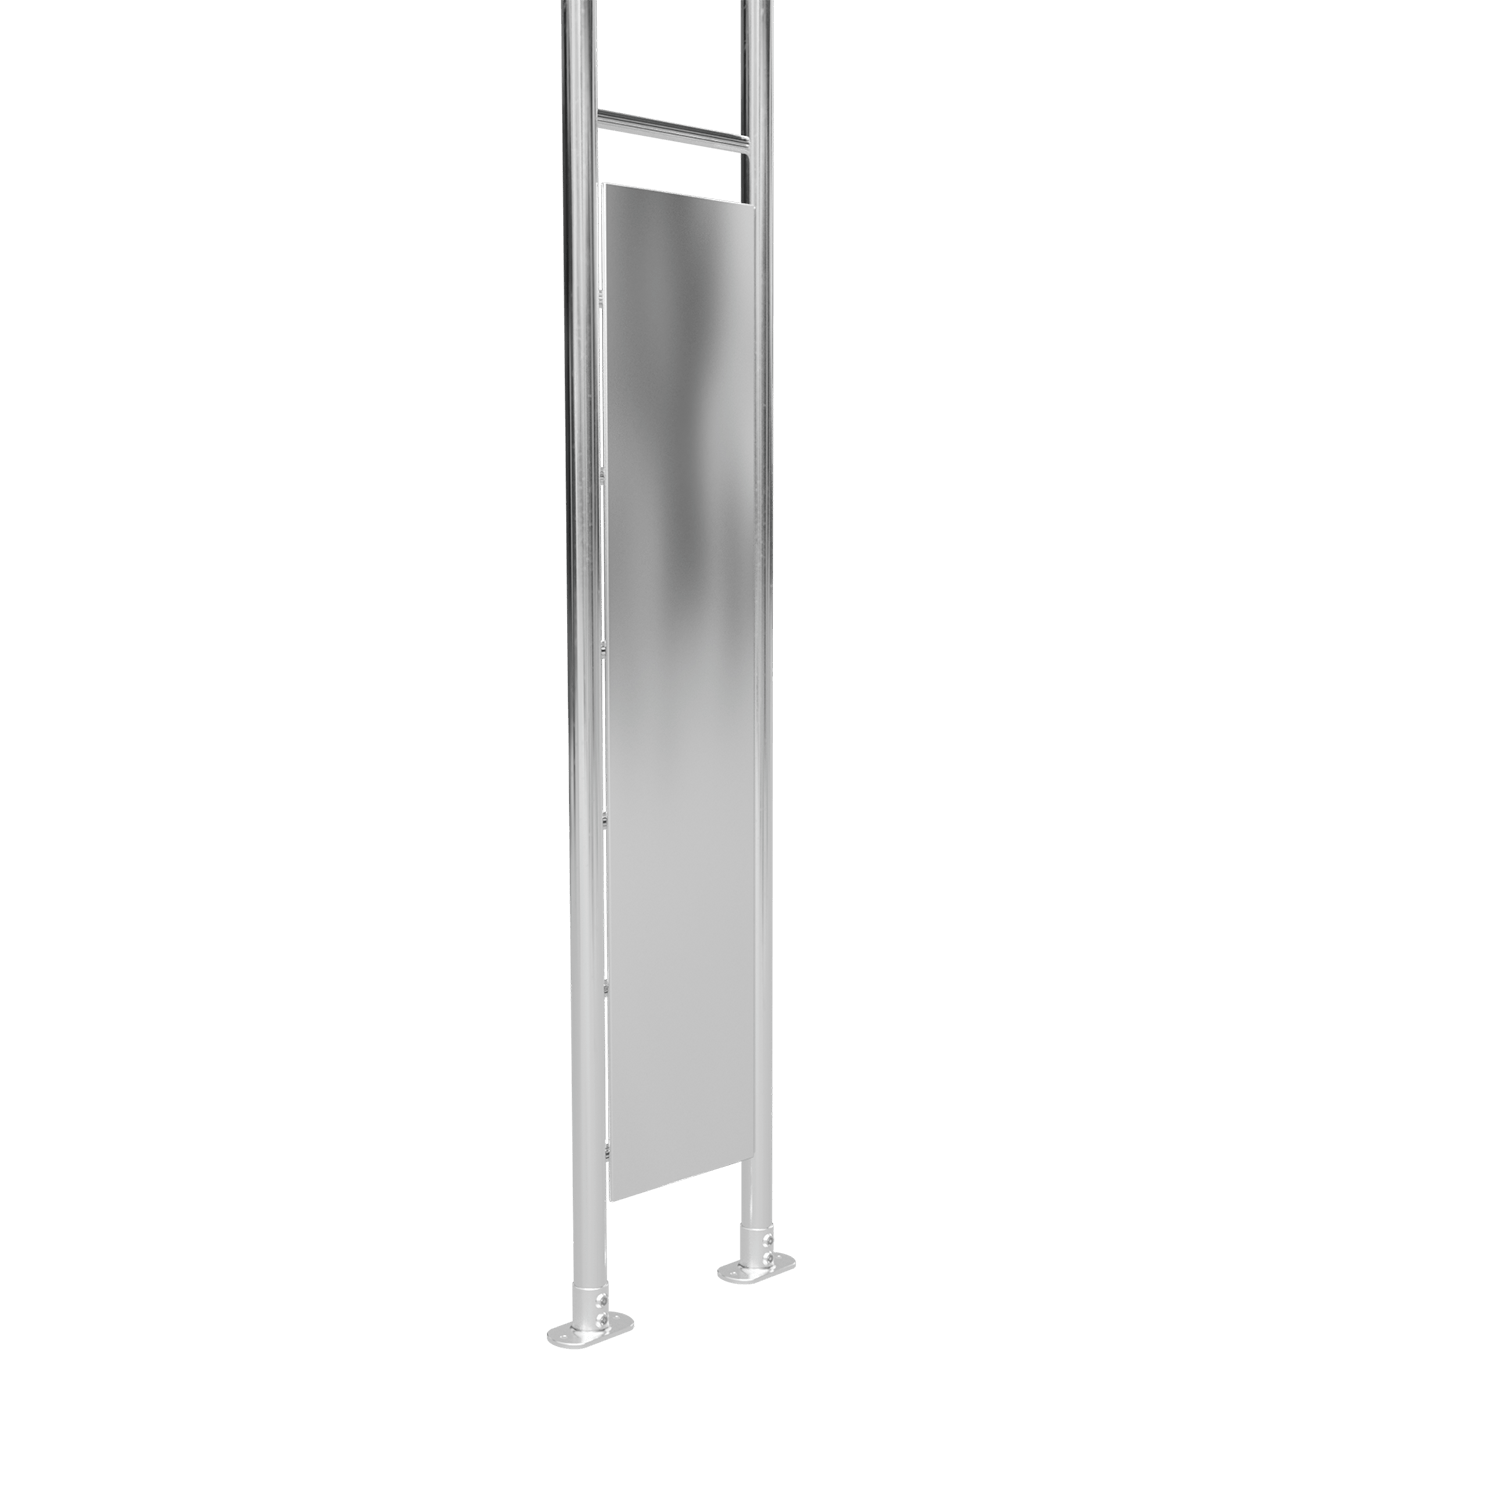 Hook-On-Security-Gate-1500-x-1500